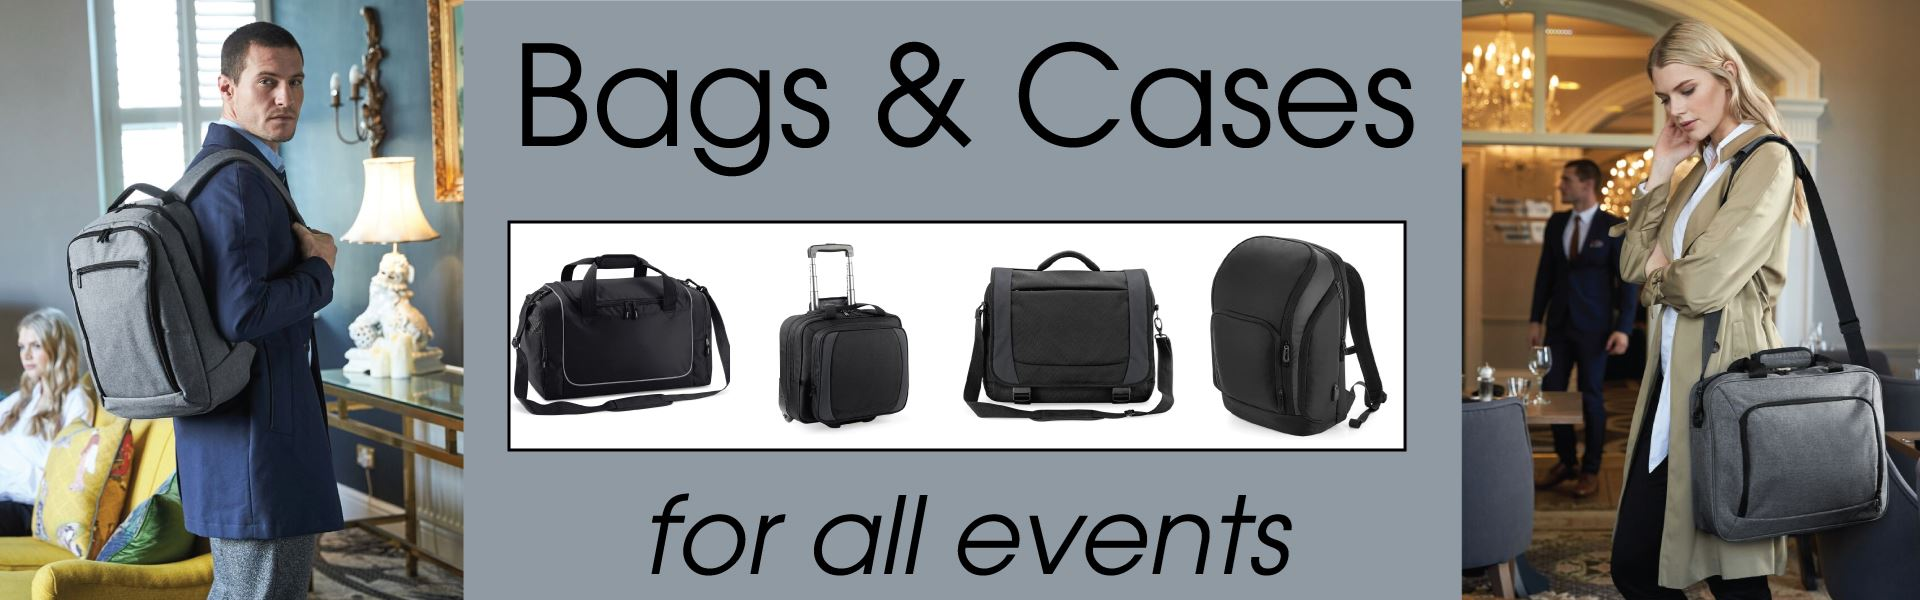 bags-cases